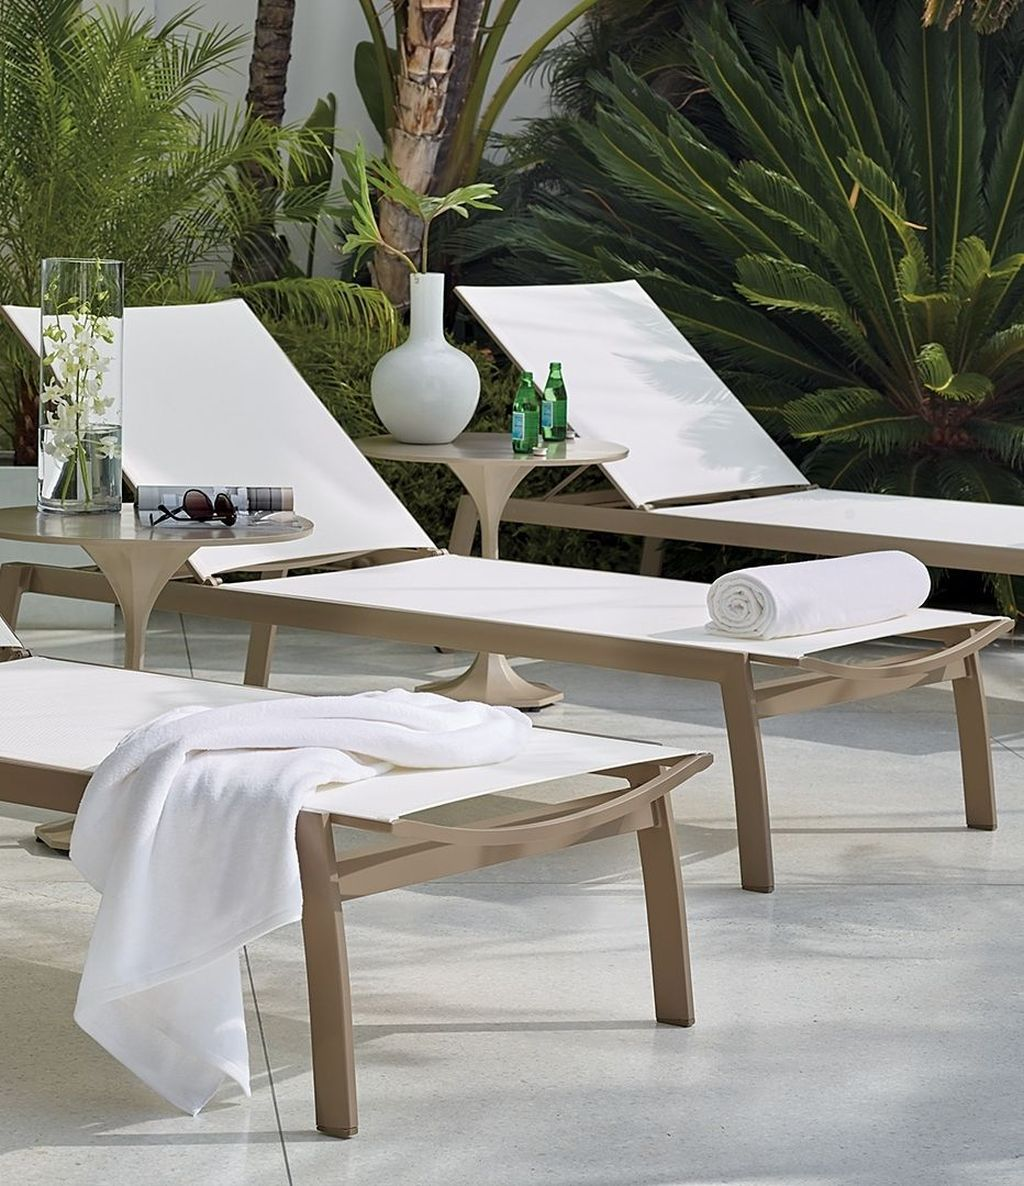 Stupendous 42 The Best Pool Lounge Chairs Design Ideas Lounge Chairs Ibusinesslaw Wood Chair Design Ideas Ibusinesslaworg